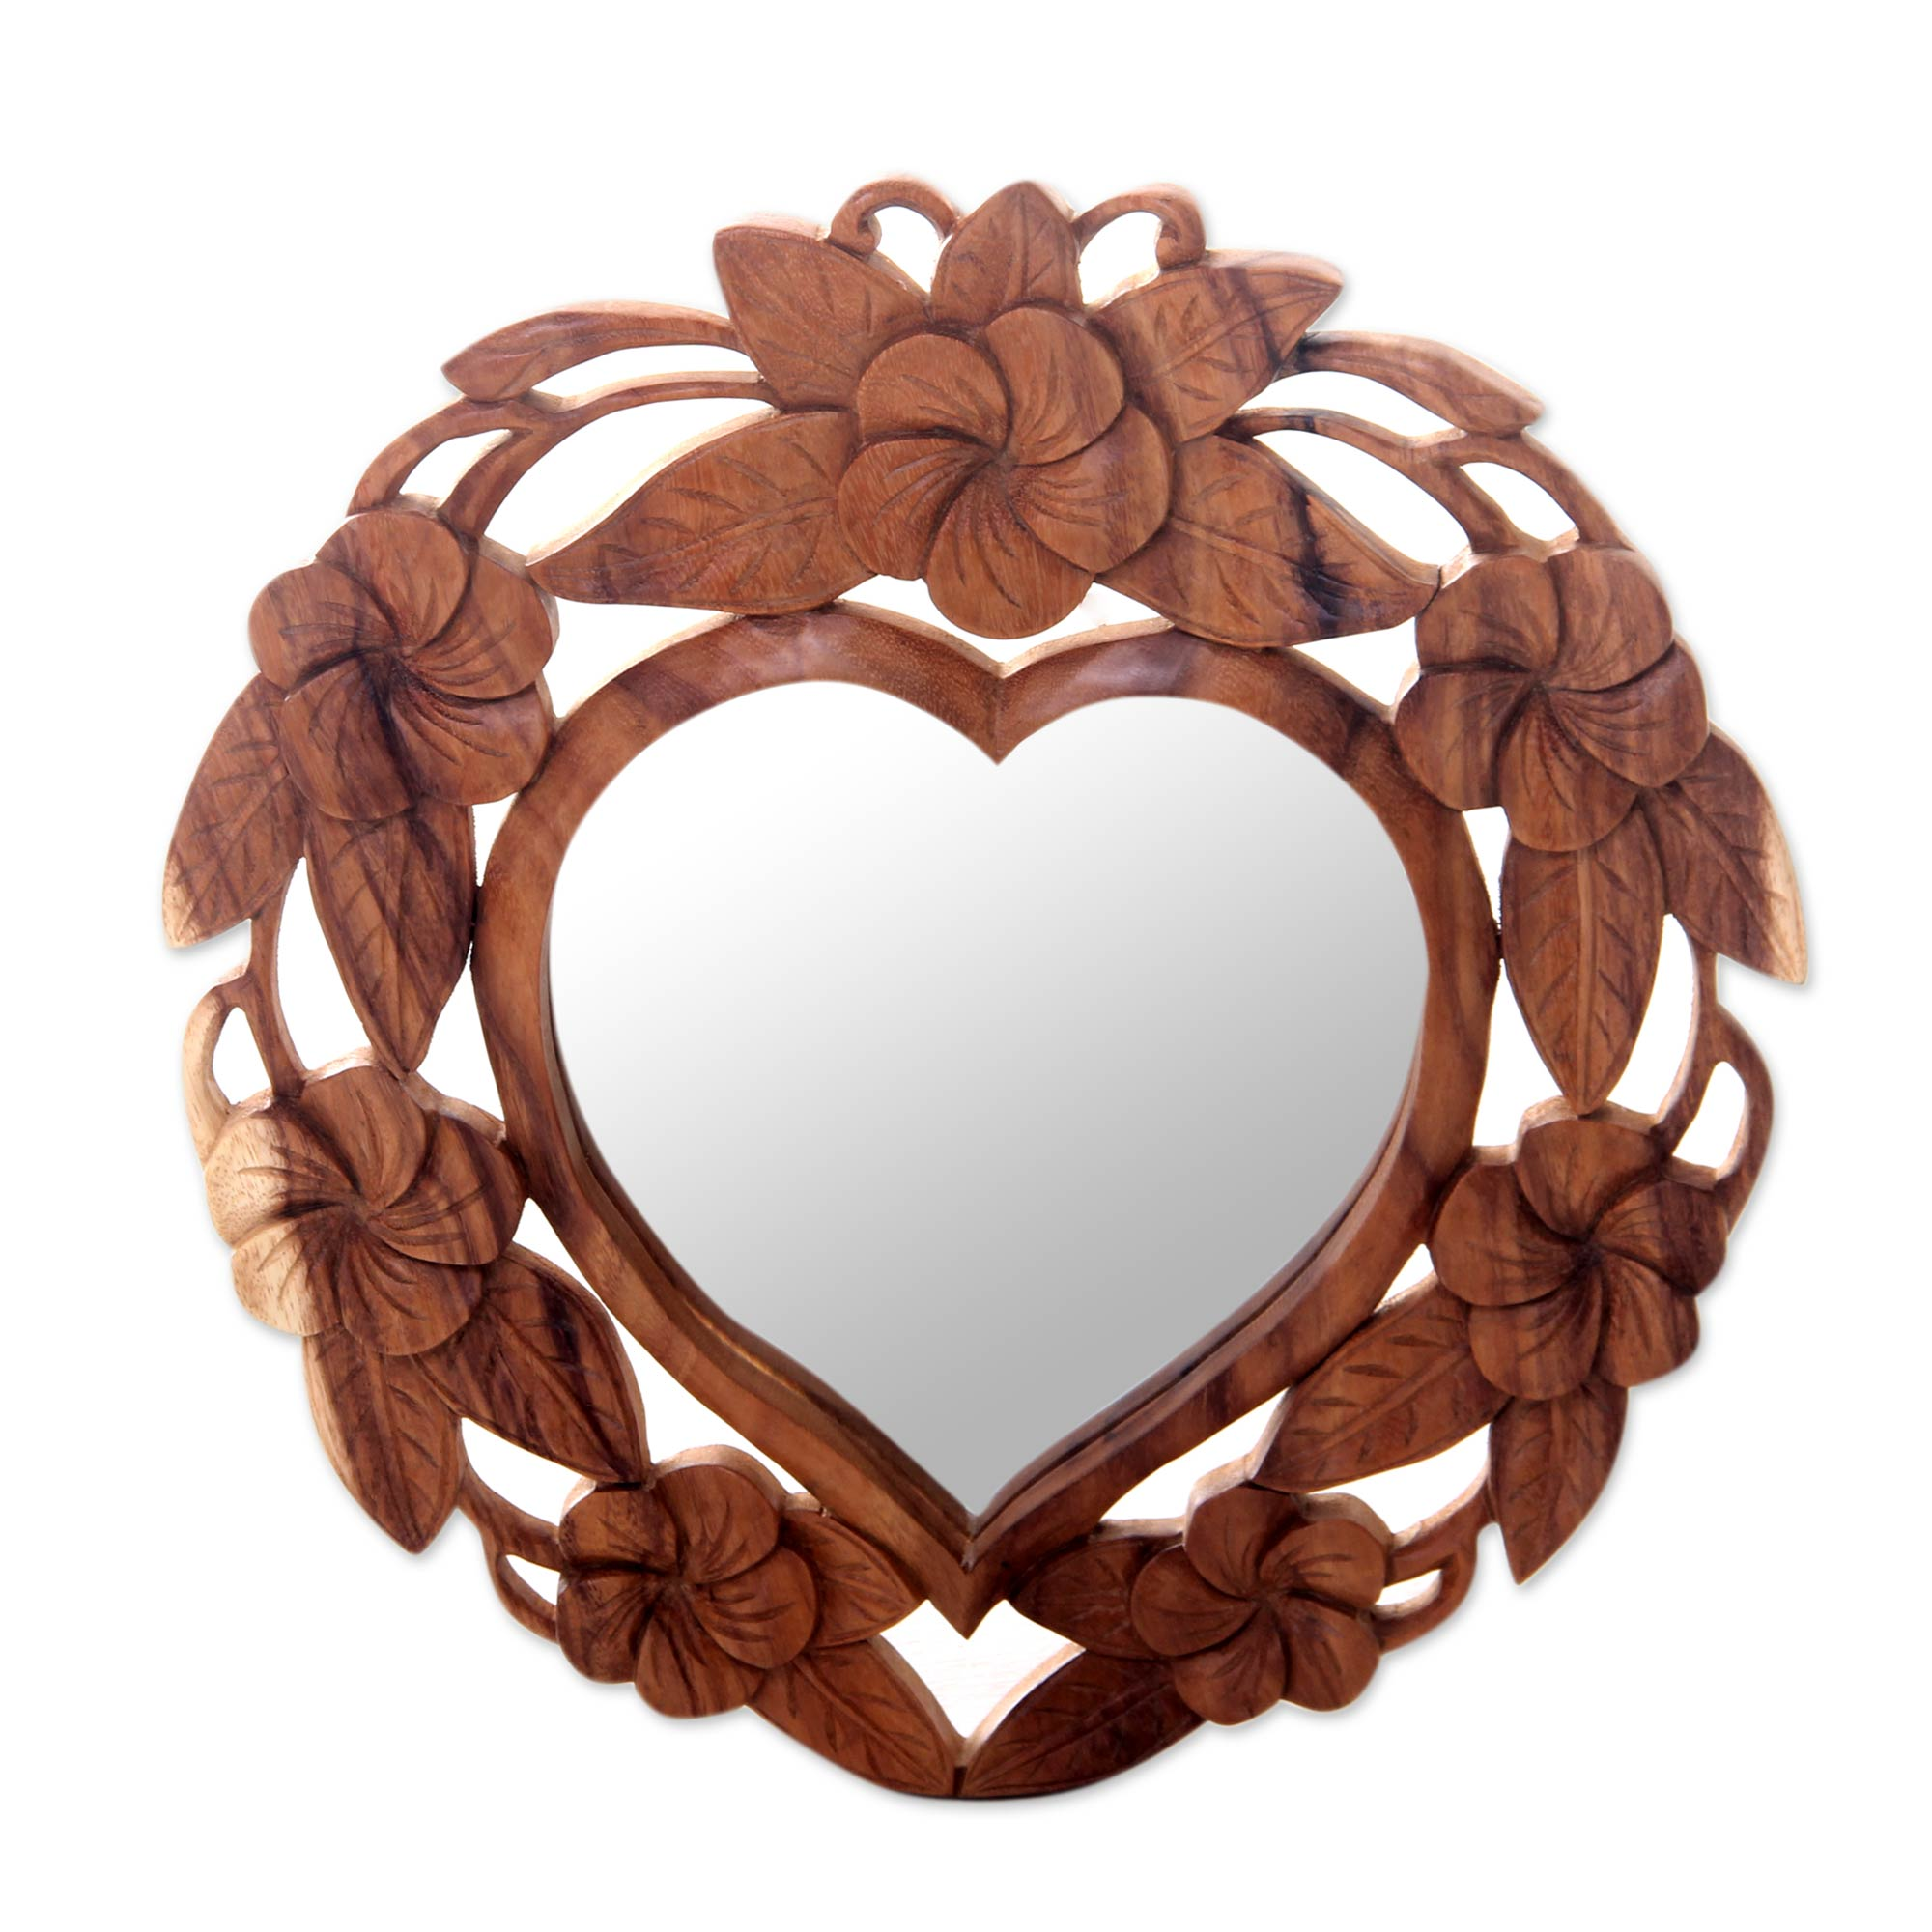 Heart Shaped Wood Wall Mirror With Floral Motif Frangipani Heart Novica